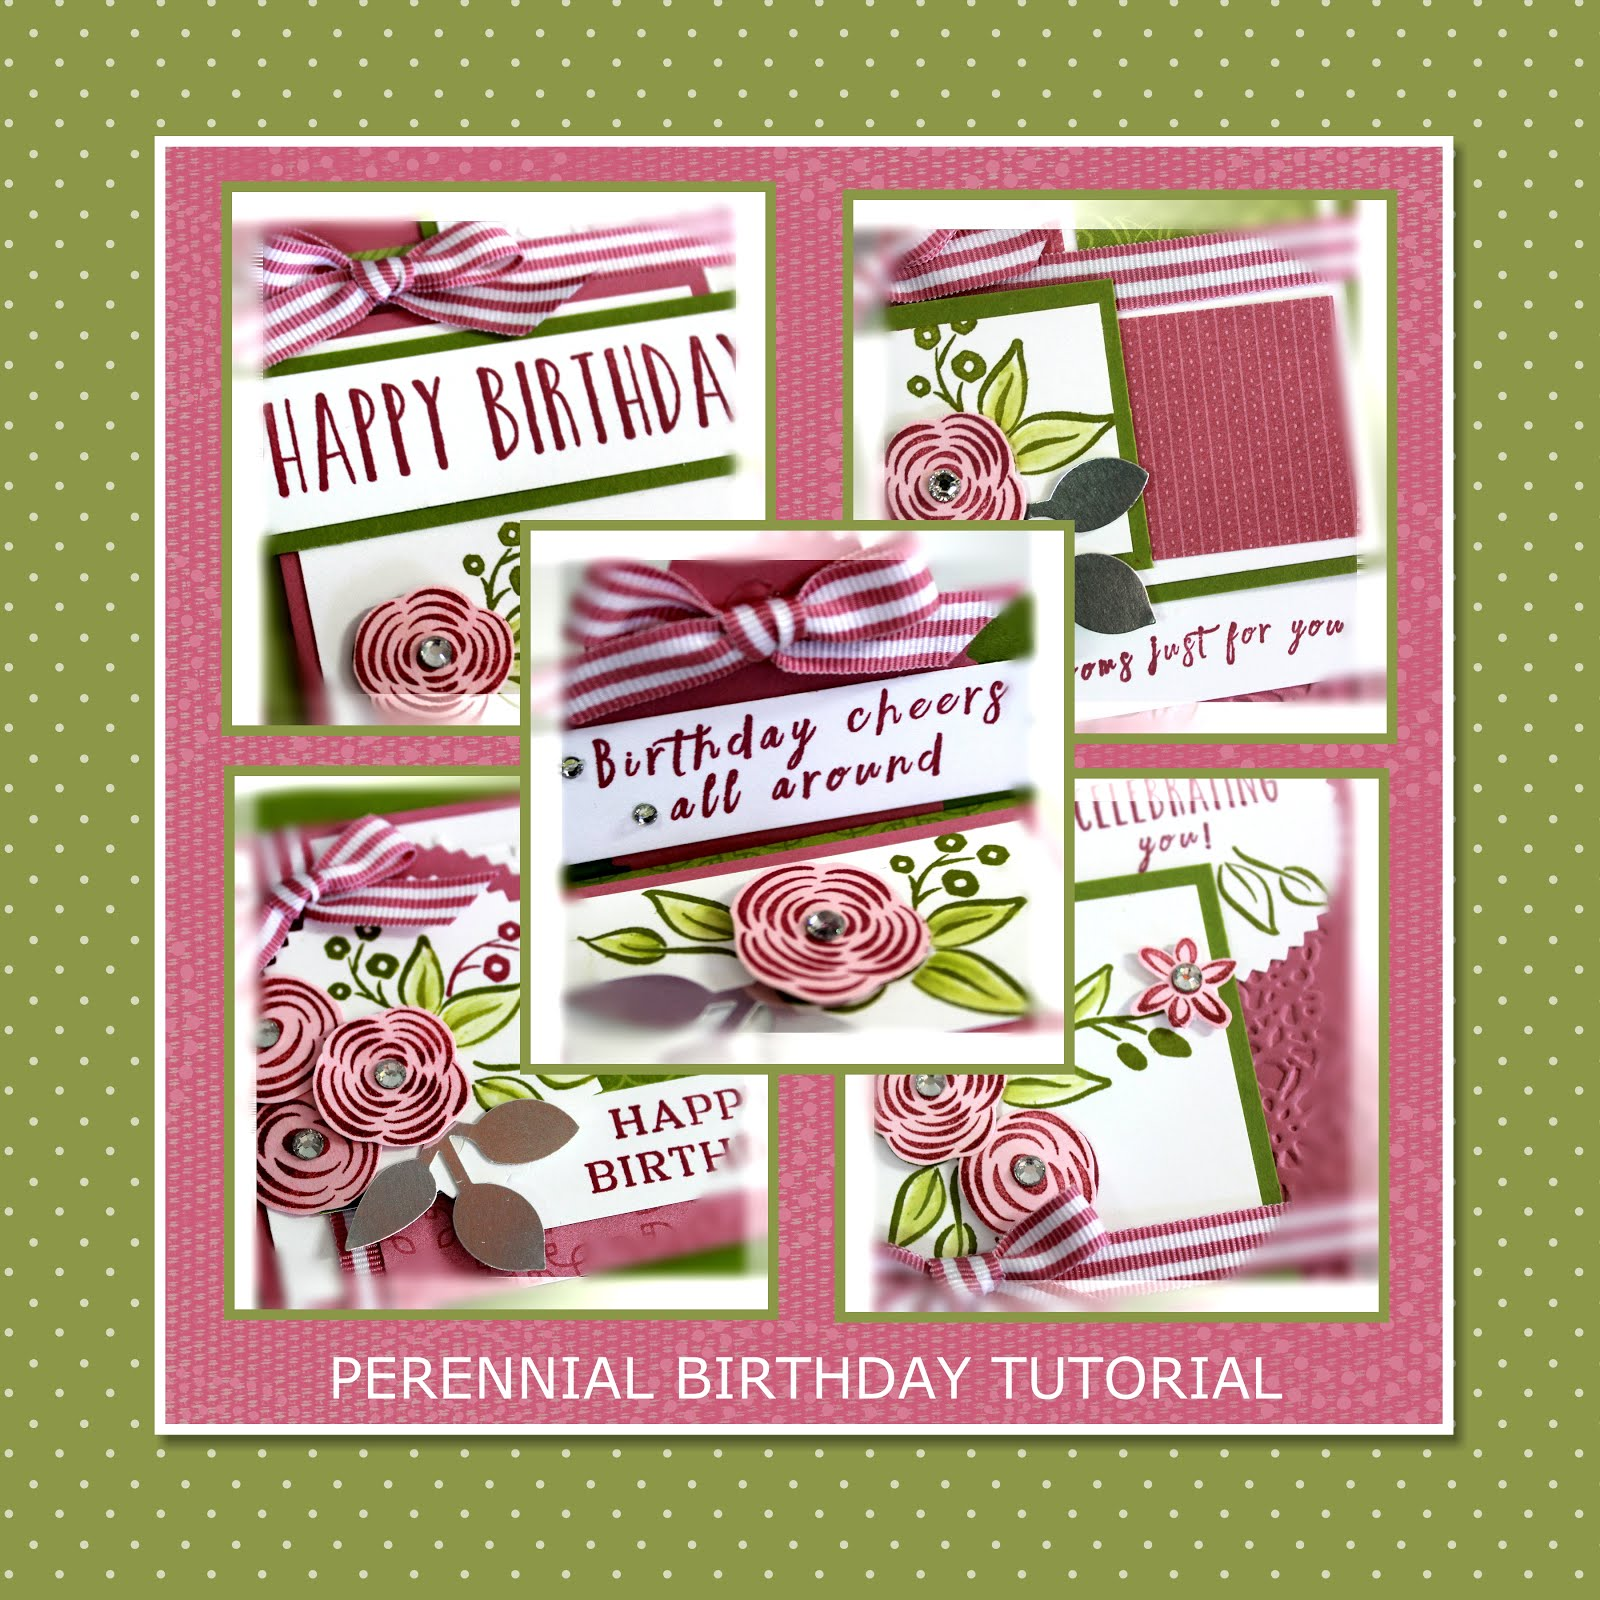 February 2018 Perennial Birthday Tutorial